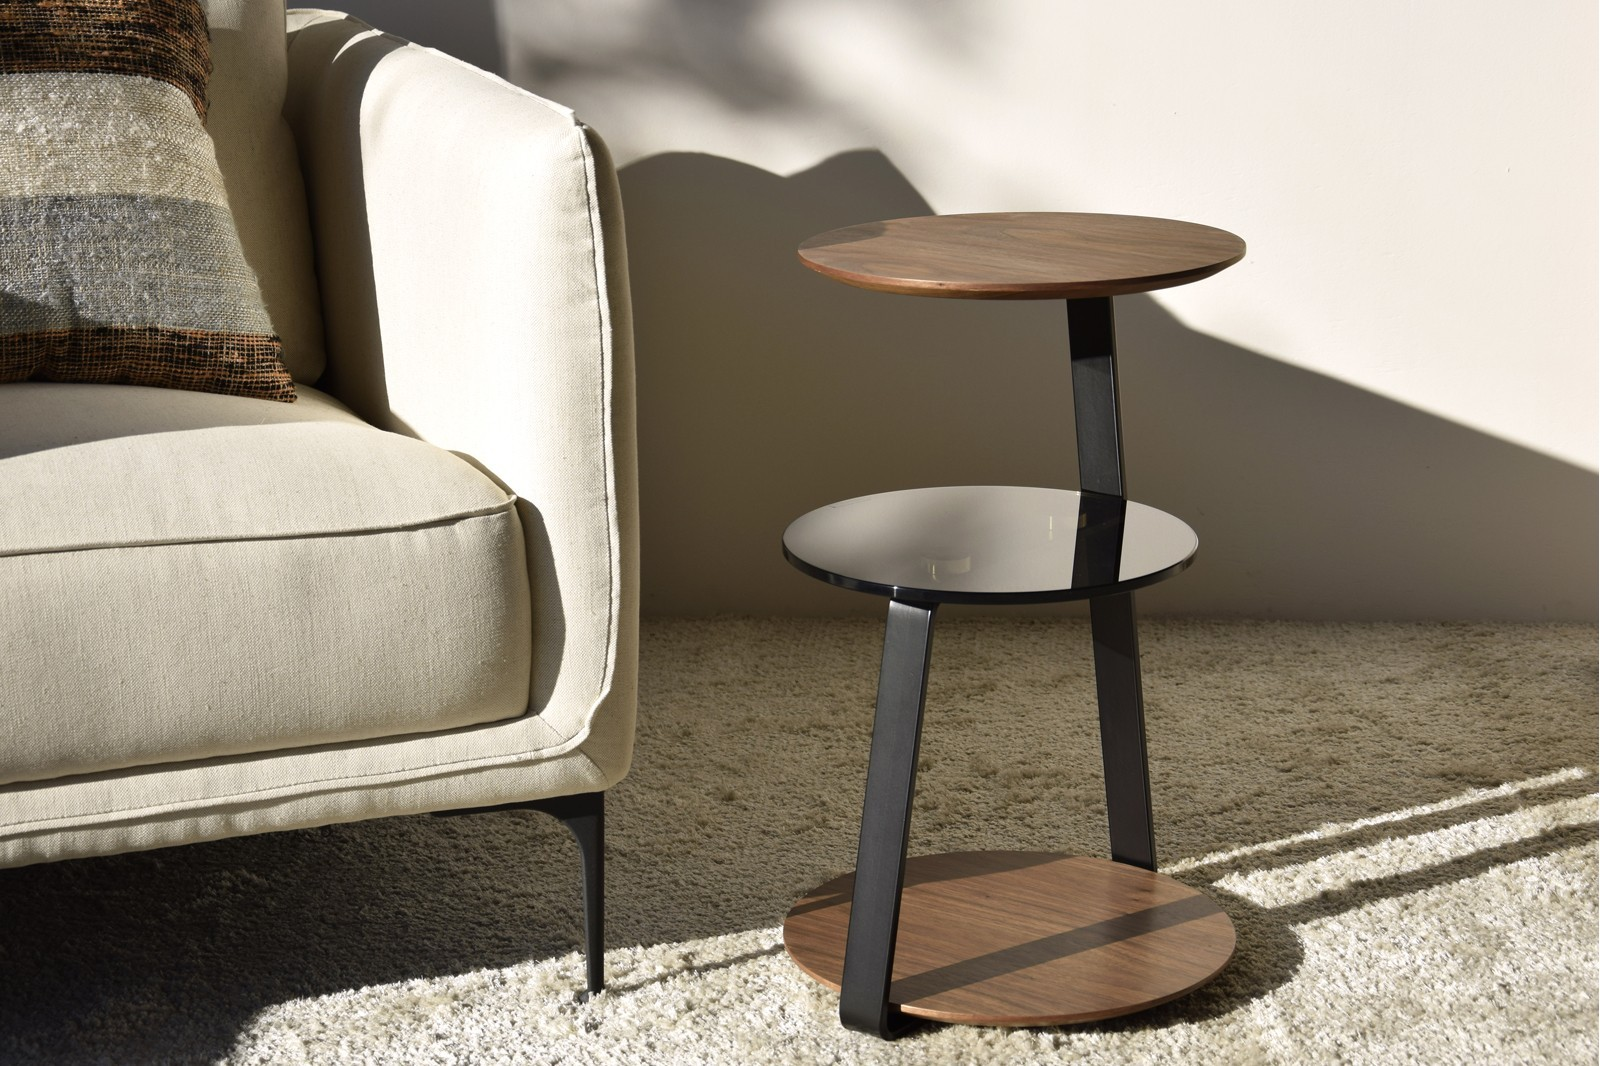 SIDE TABLE WALNUT TEMPERED GLASS AND METAL